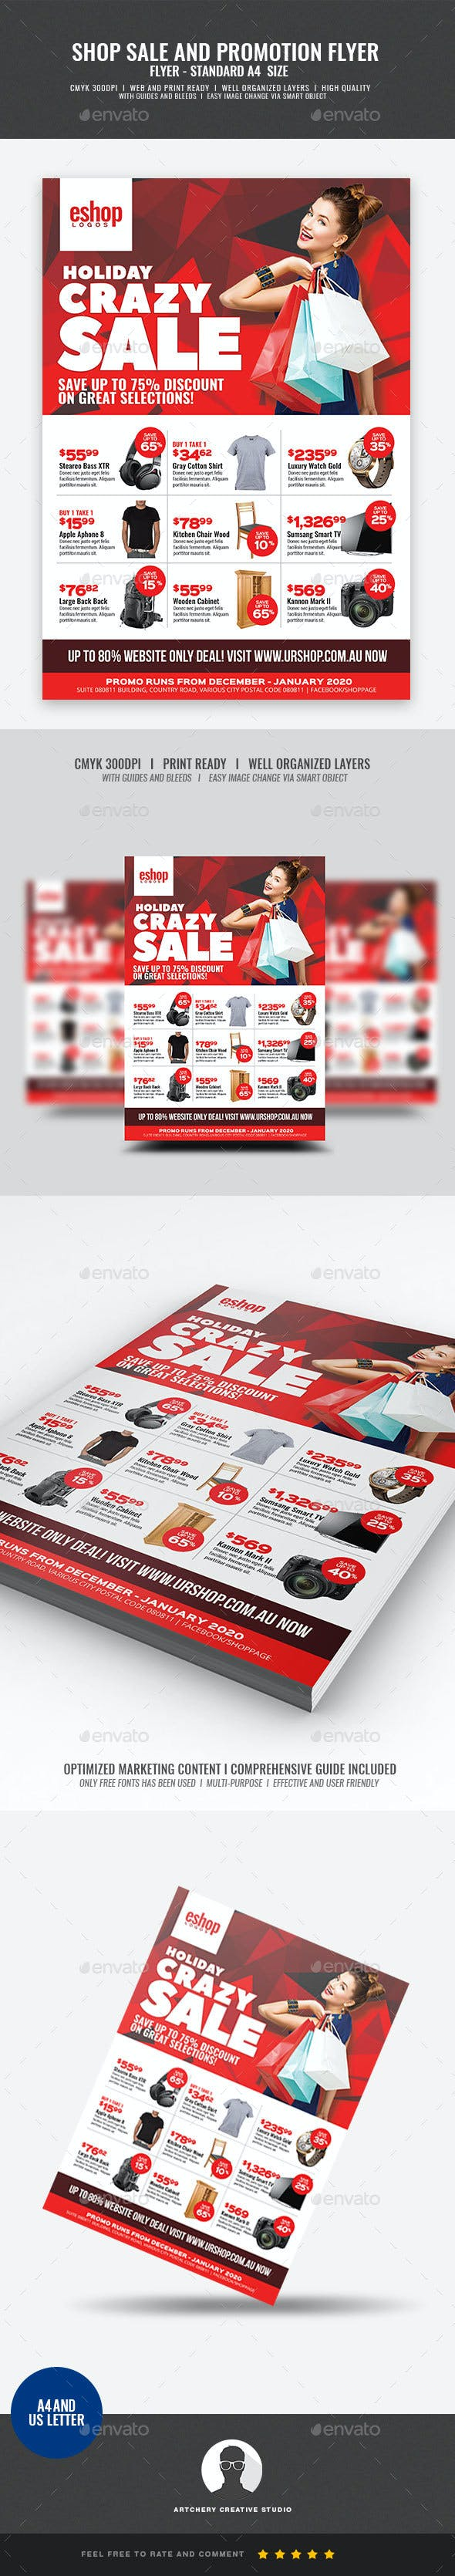 product sale and promotional sales flyer by artchery graphicriver